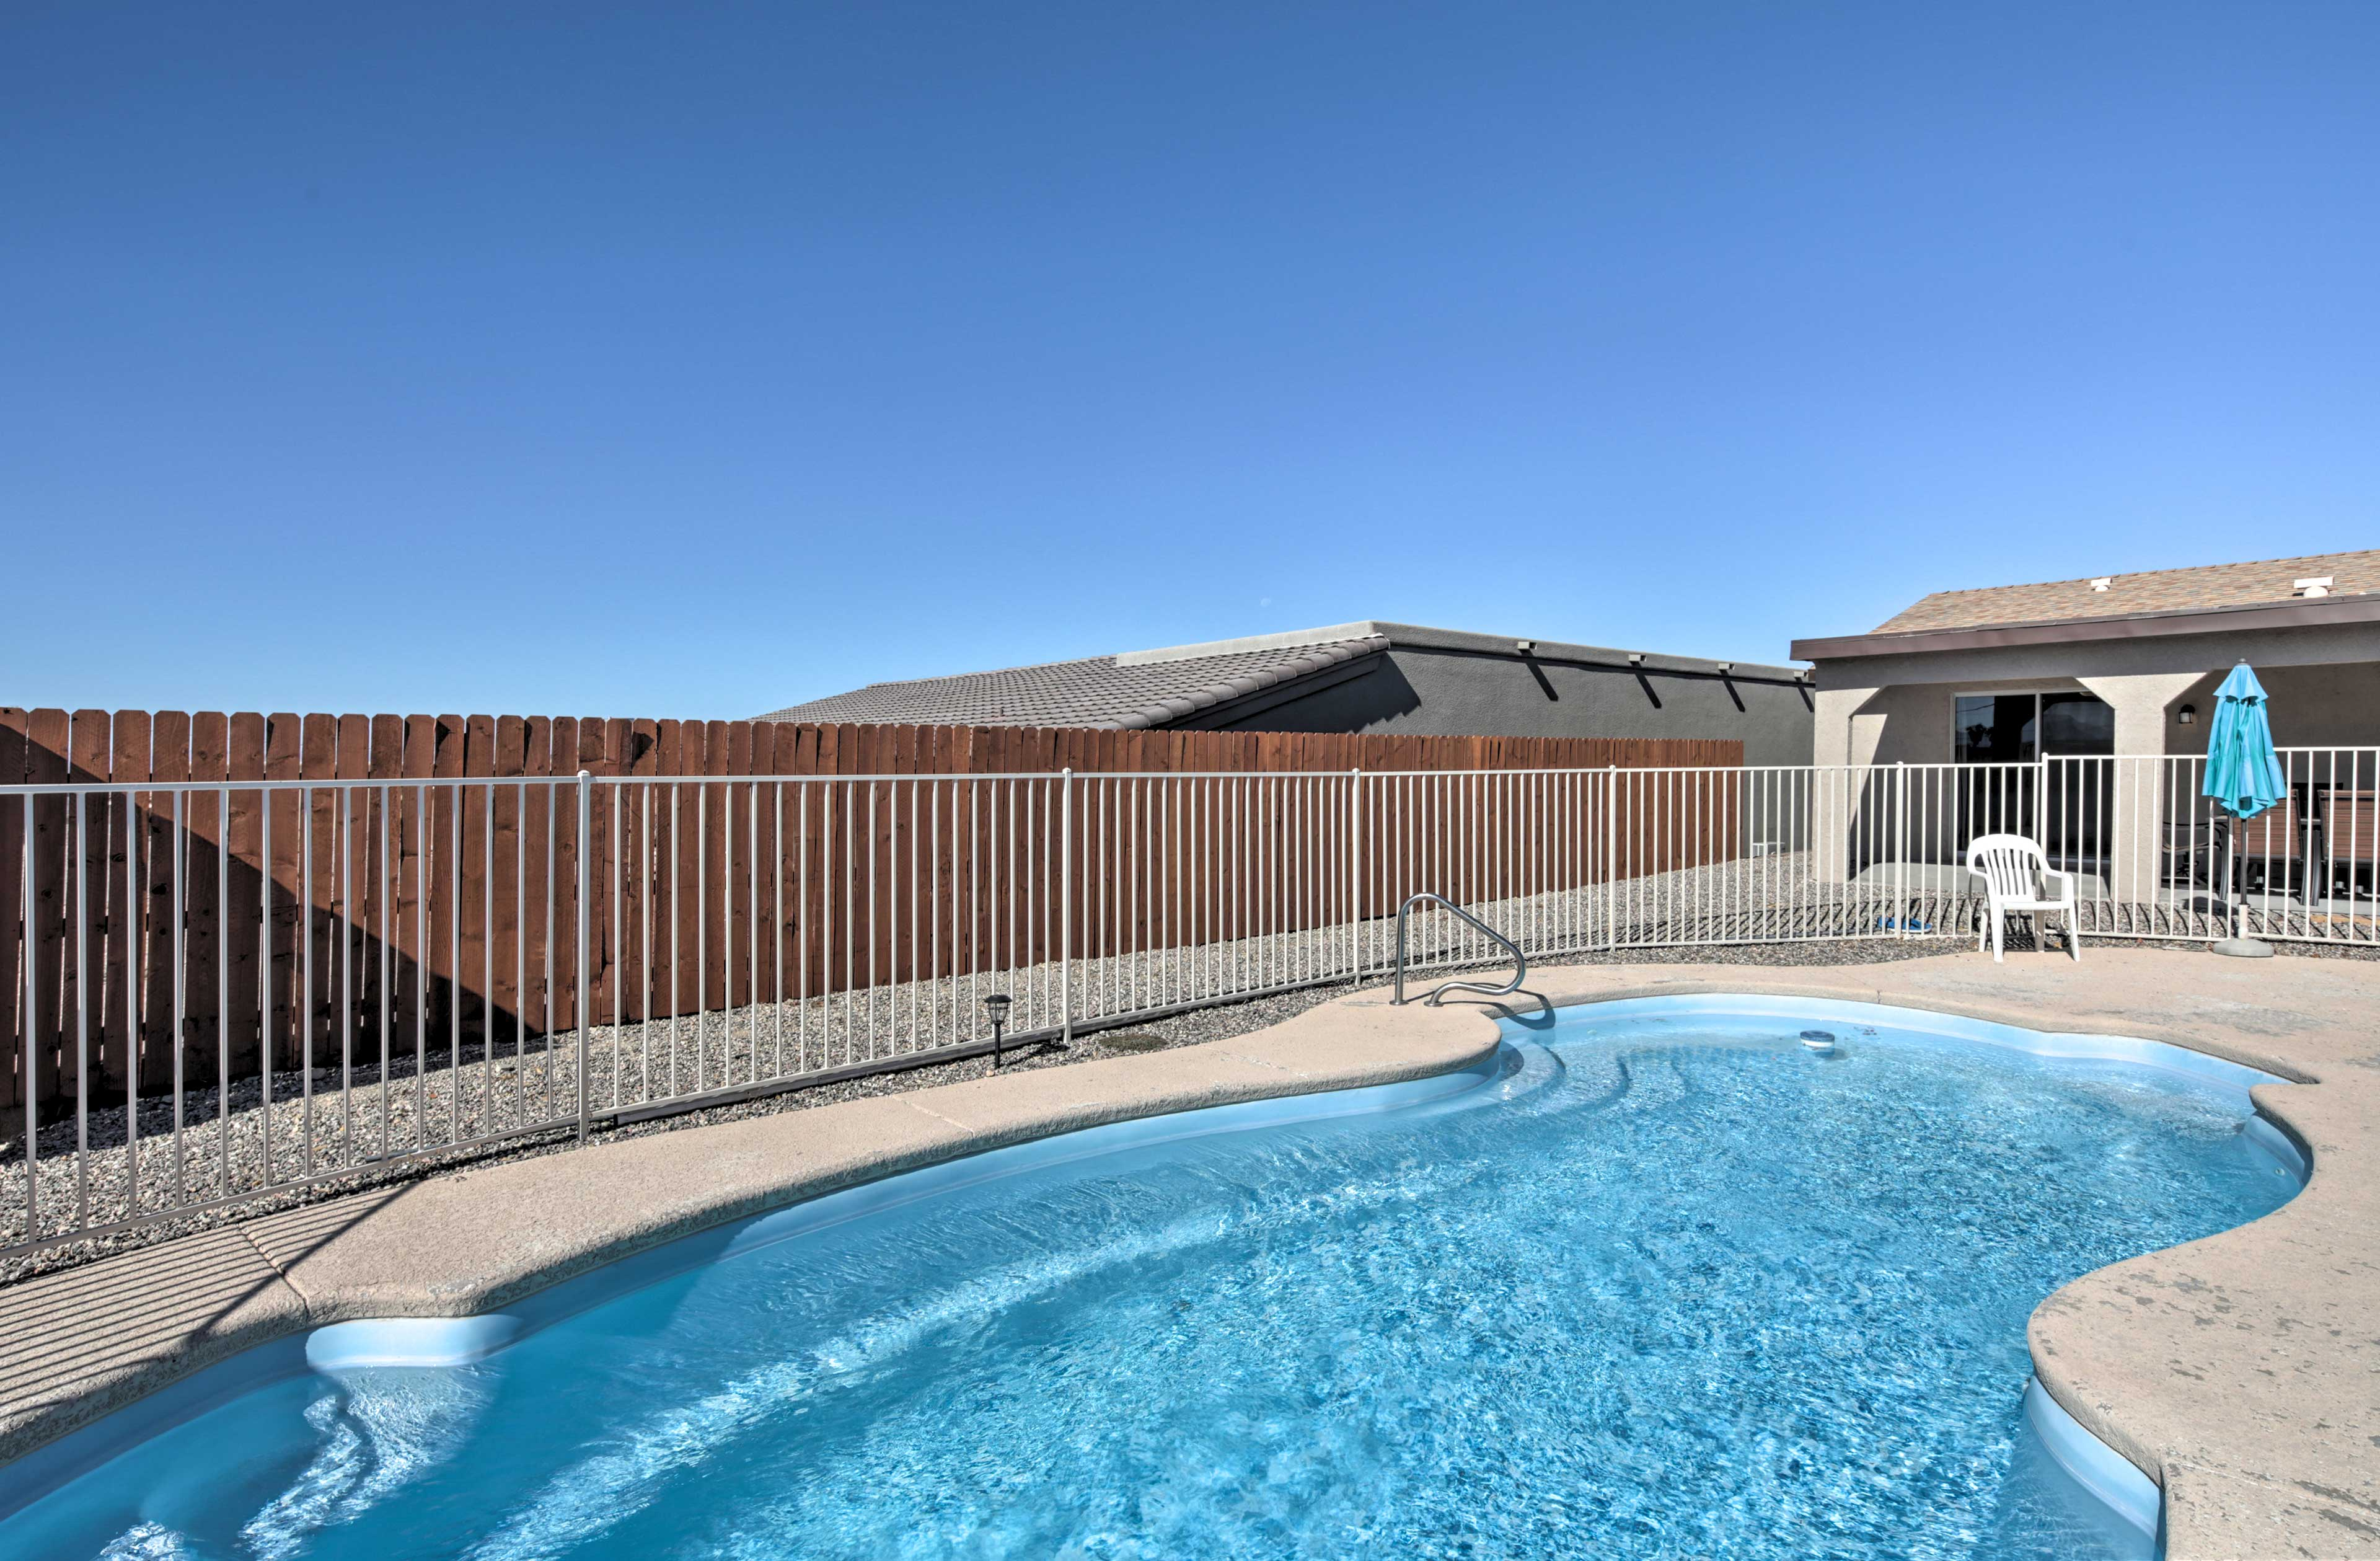 Experience easy access to Lake Havasu & London Bridge from this vacation rental!